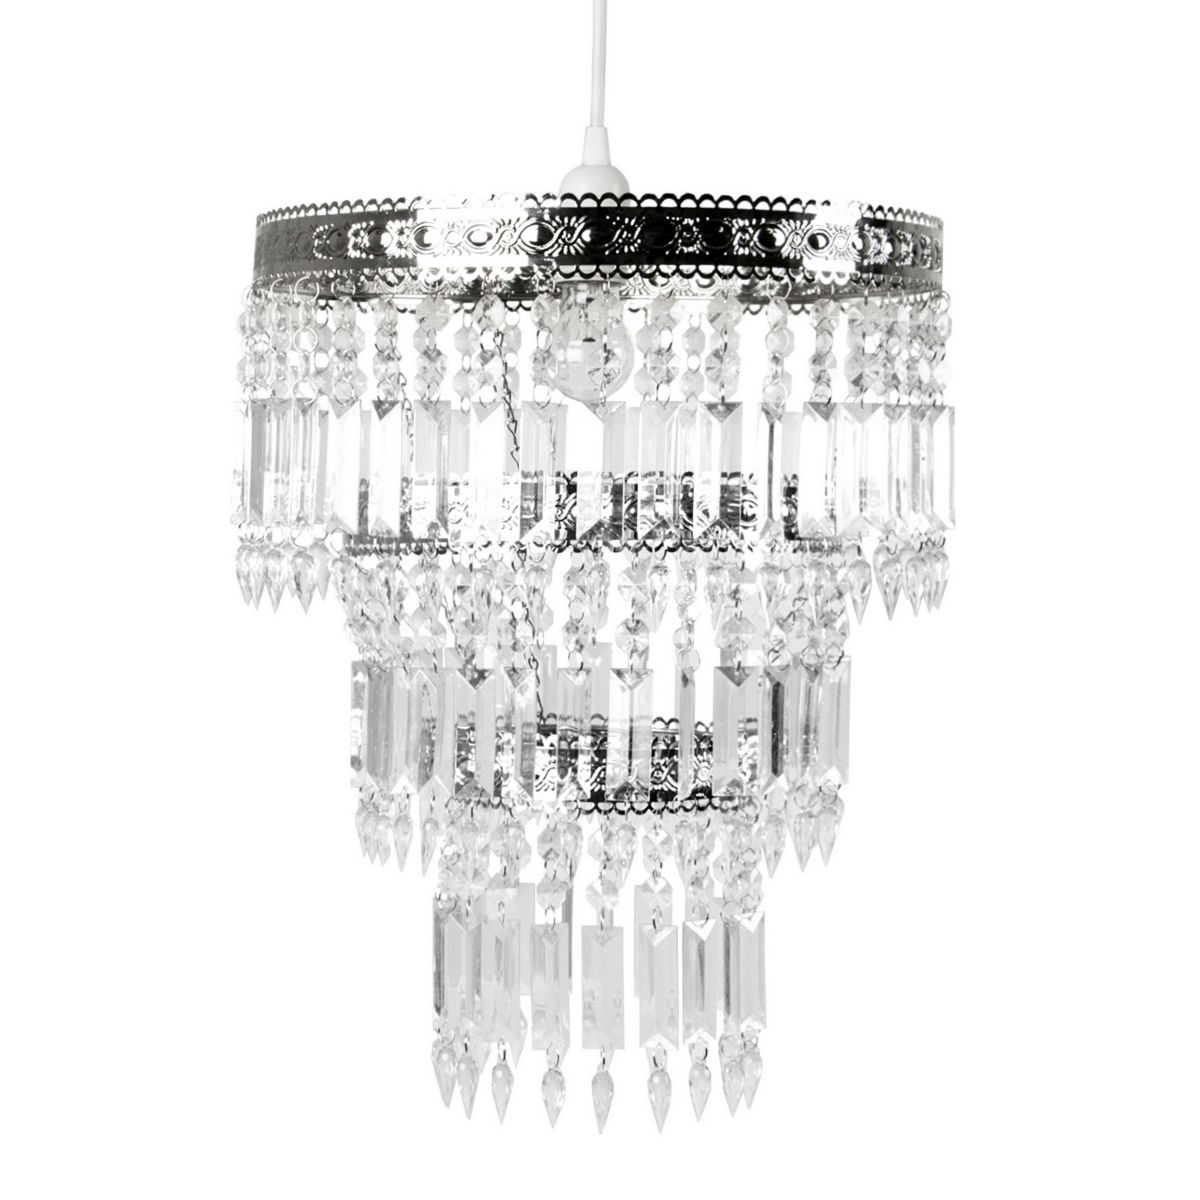 Sleeping Partners International Inc Tadpoles Faux Crystal And Chrome Queen S Crown Pendant Large Reviews Home Macy S Pendant Chandelier Pendant Light Fixtures Chandelier Shades